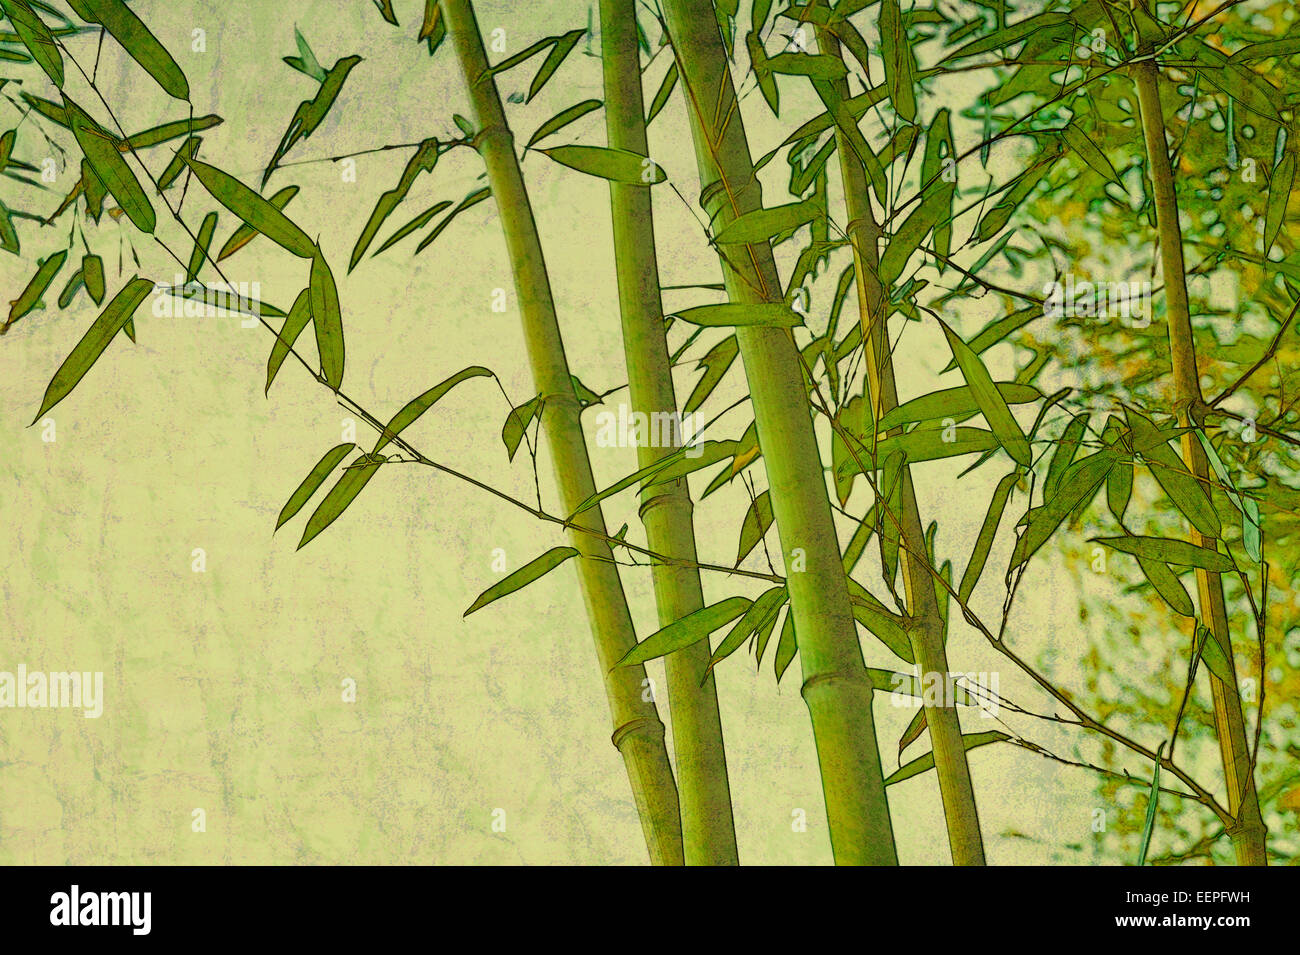 grunge-vintage-zen-bamboo-green-natural-textured-background-mixed-EEPFWH.jpg